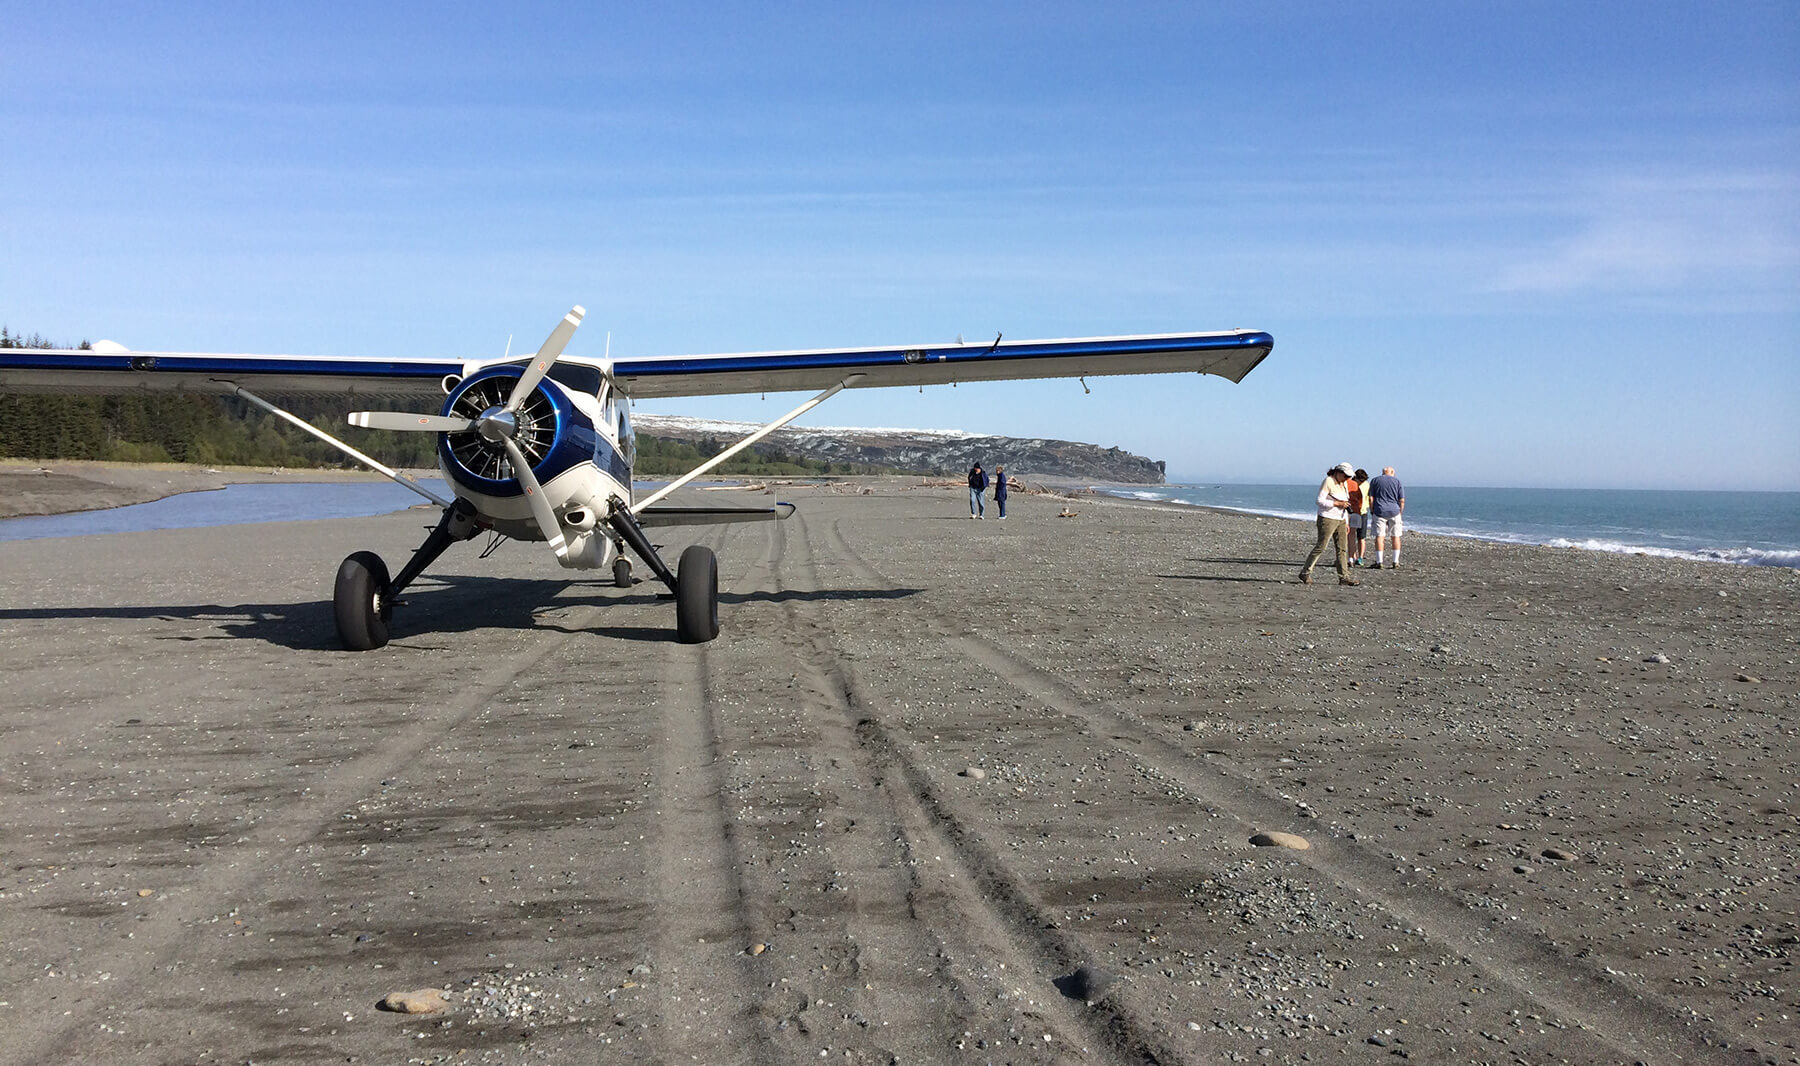 Beach landing flights